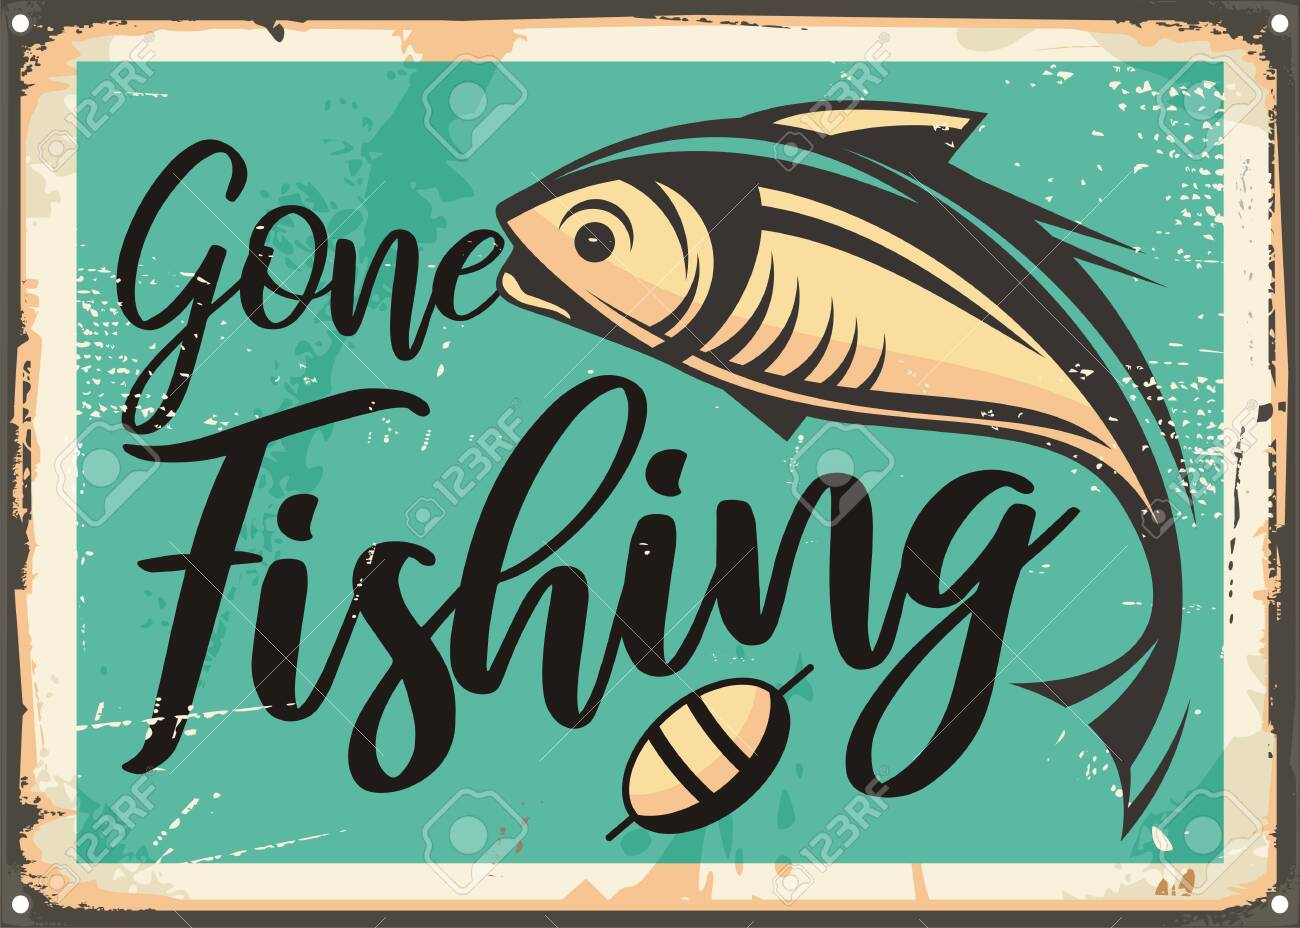 Gone fishing vintage decorative sign template. Retro poster with fish on old rusty metal background. Sports and recreation vintage vector layout. - 131910012